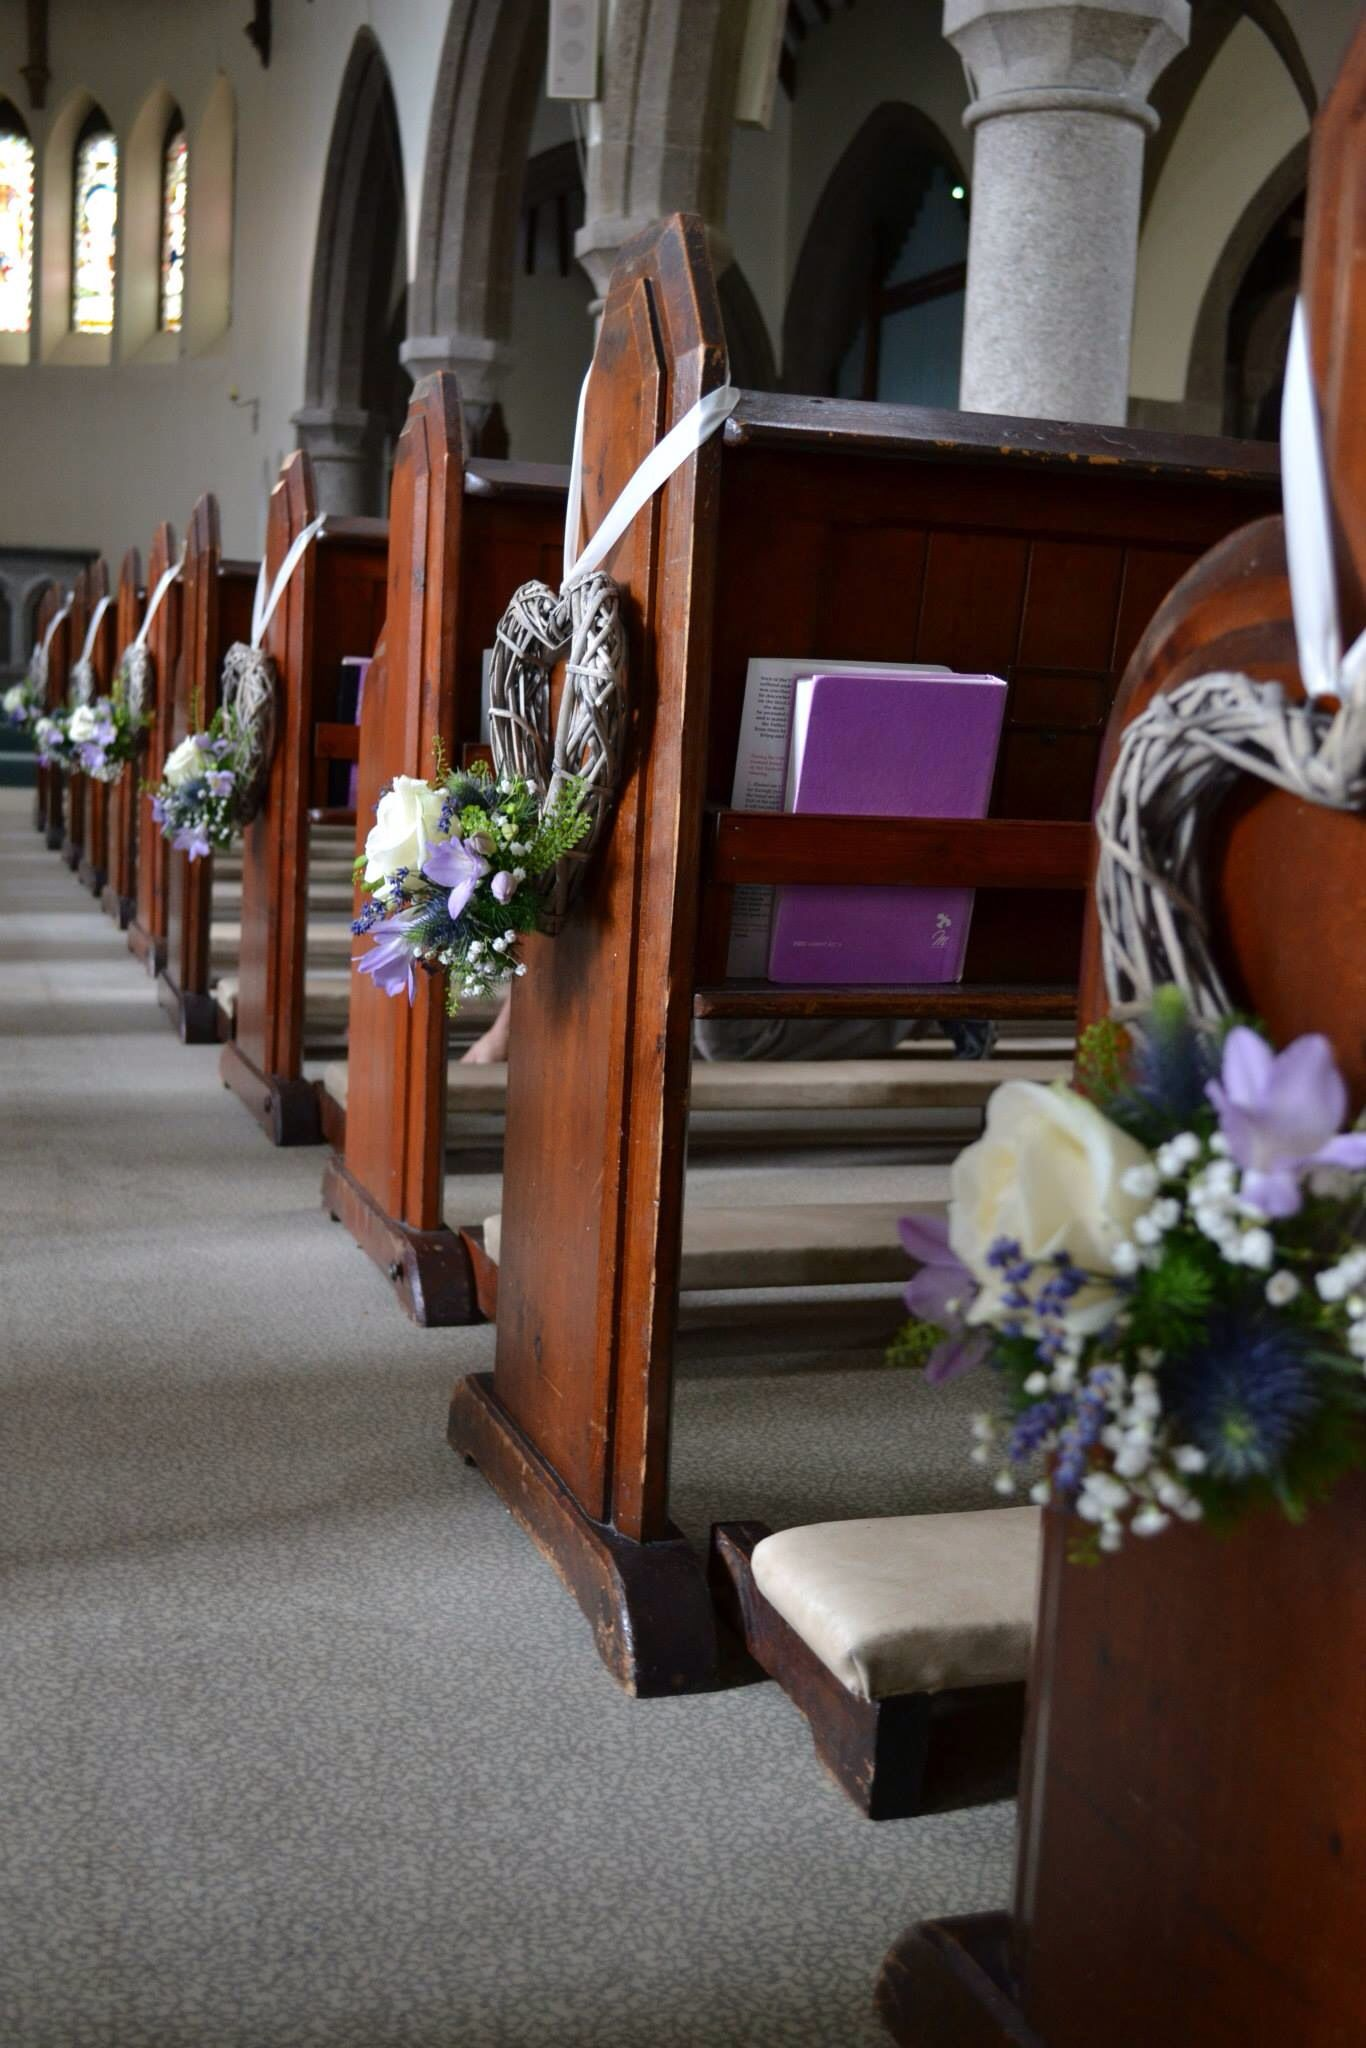 22+ Wedding pew decorations for sale ideas in 2021